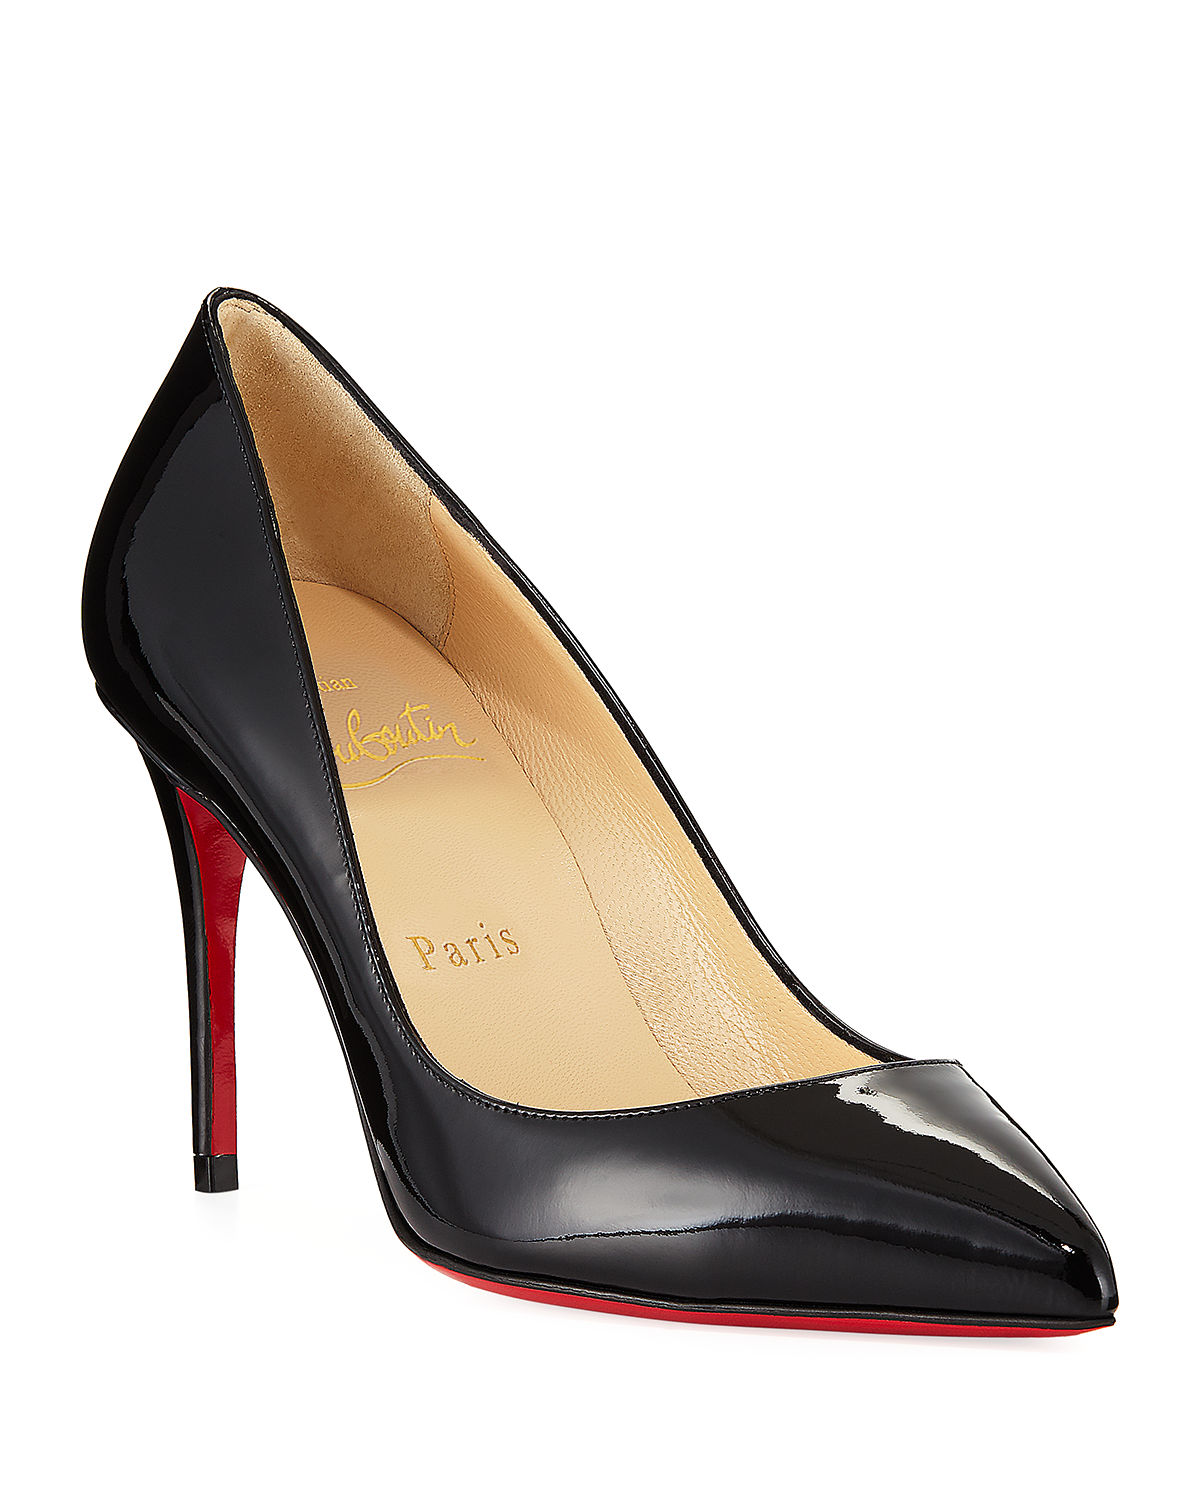 1d633aef99f Pigalle Follies 85mm Patent Red Sole Pump